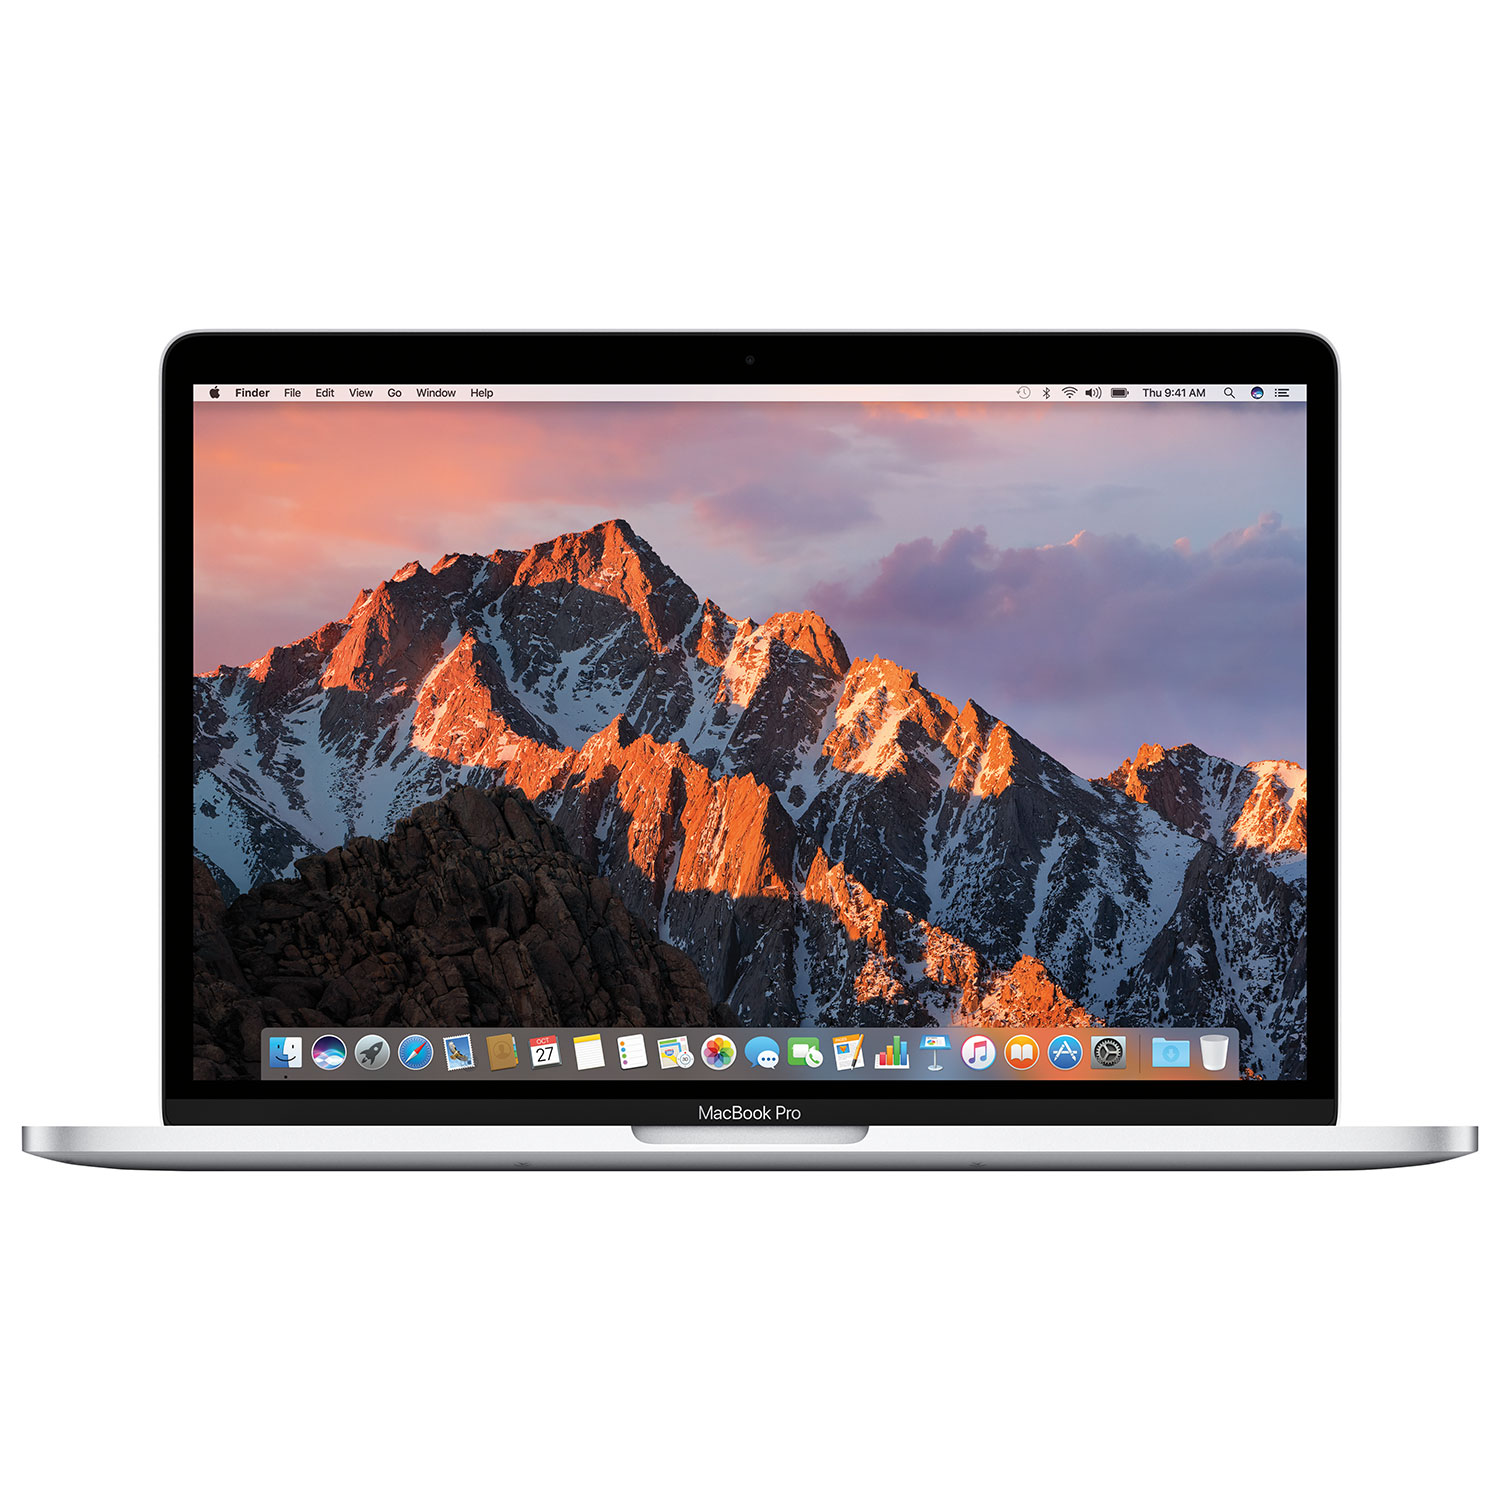 Word on I-Mac computer?